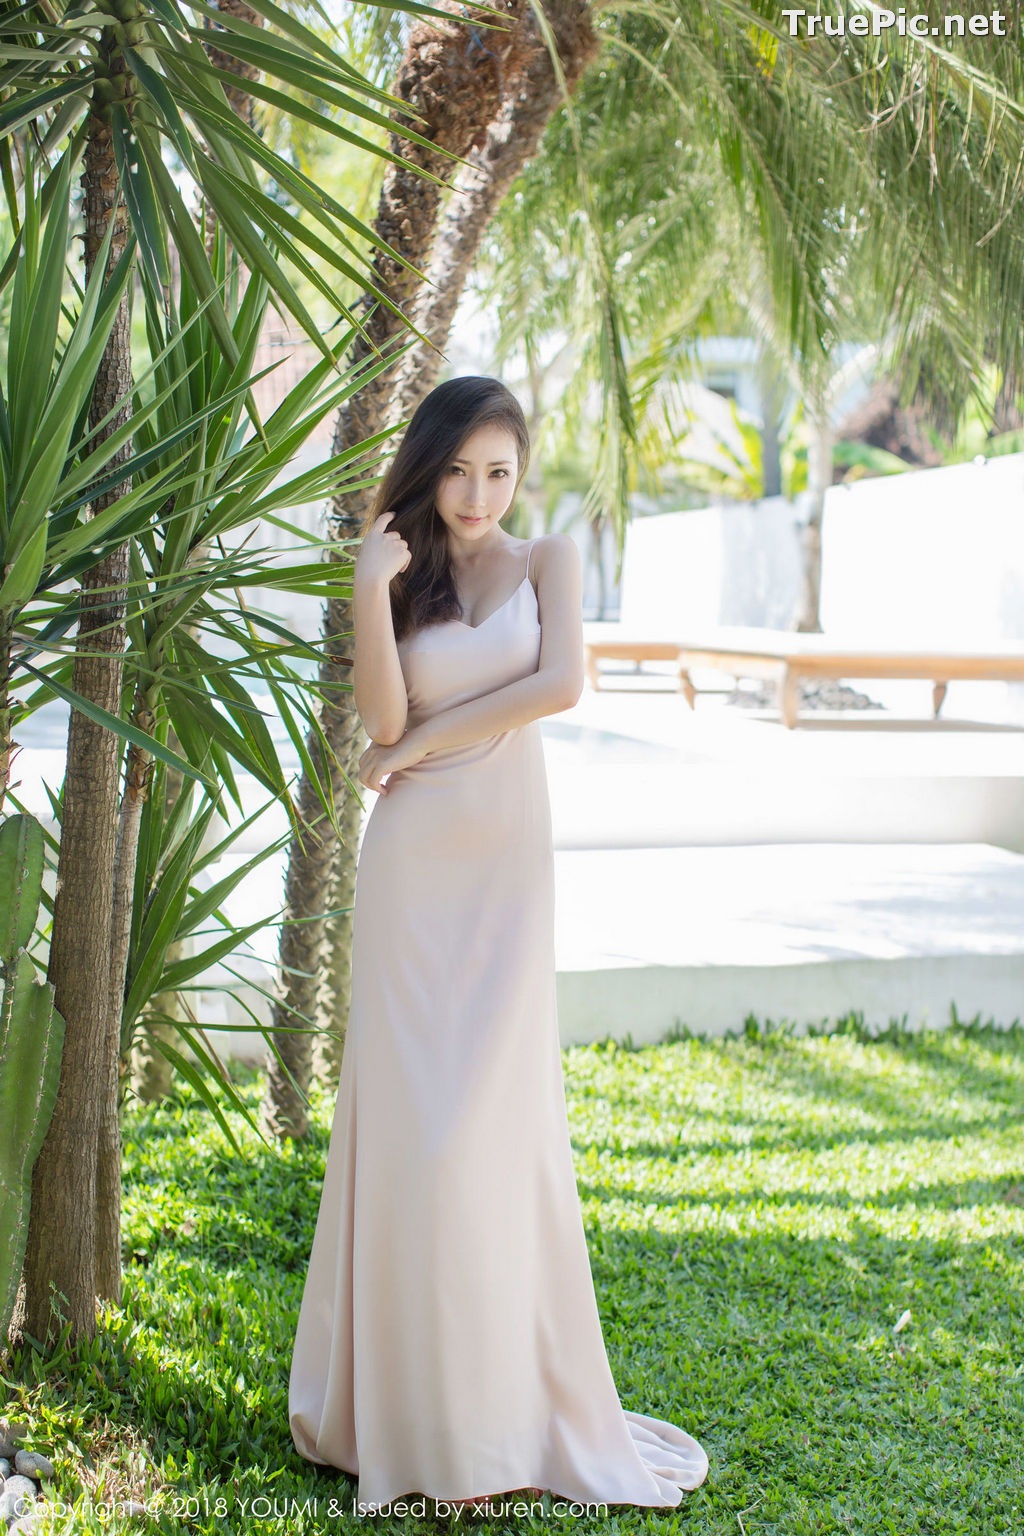 Image YouMi Vol.156 – Chinese Model Yumi Youmei (尤美) – Beautiful Summer In Bali - TruePic.net - Picture-5